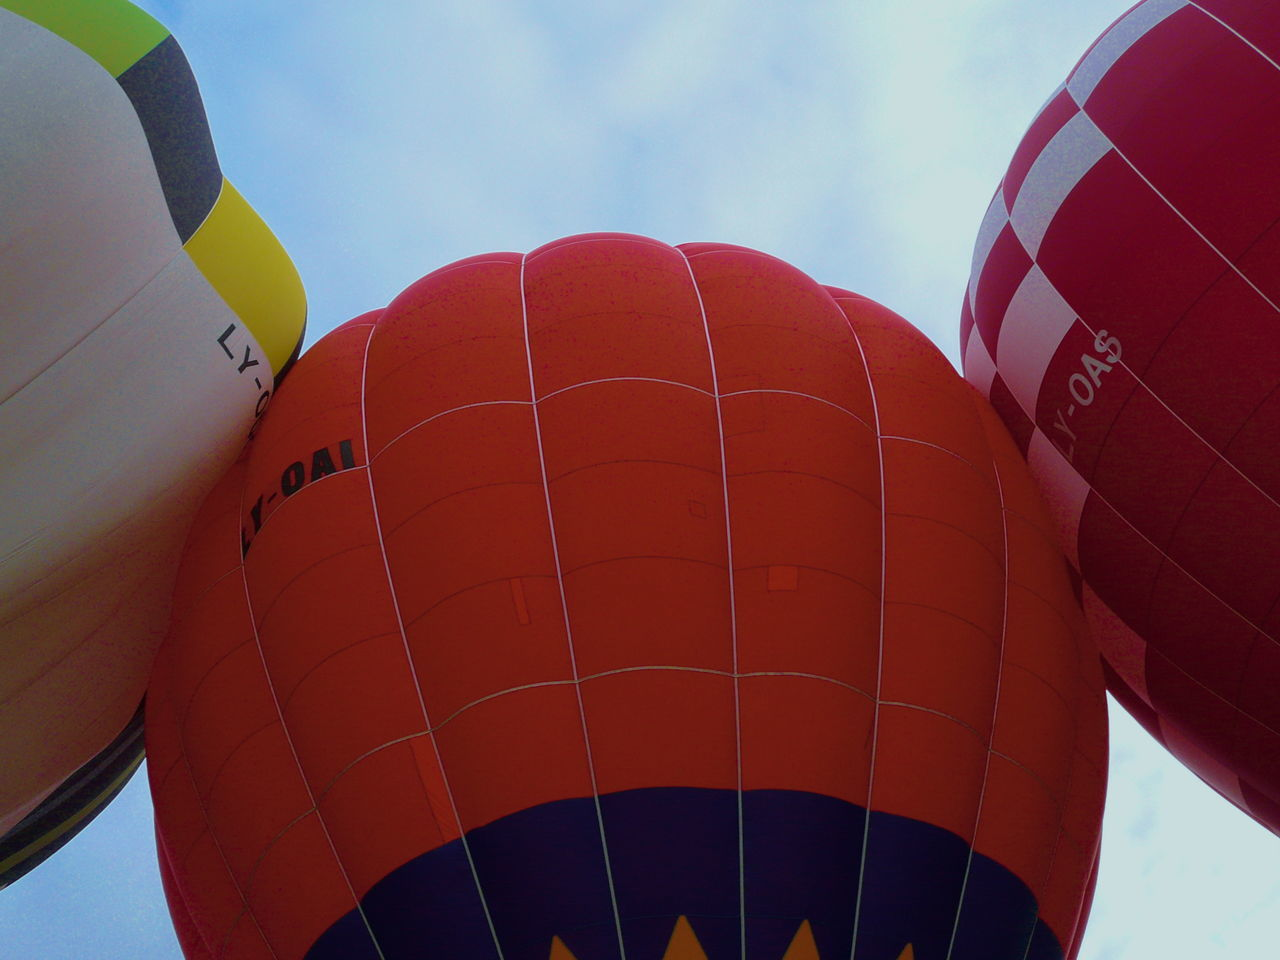 hot air balloon, transportation, sky, traditional festival, low angle view, air vehicle, celebration, outdoors, adventure, mode of transport, ballooning festival, day, mid-air, red, flying, no people, close-up